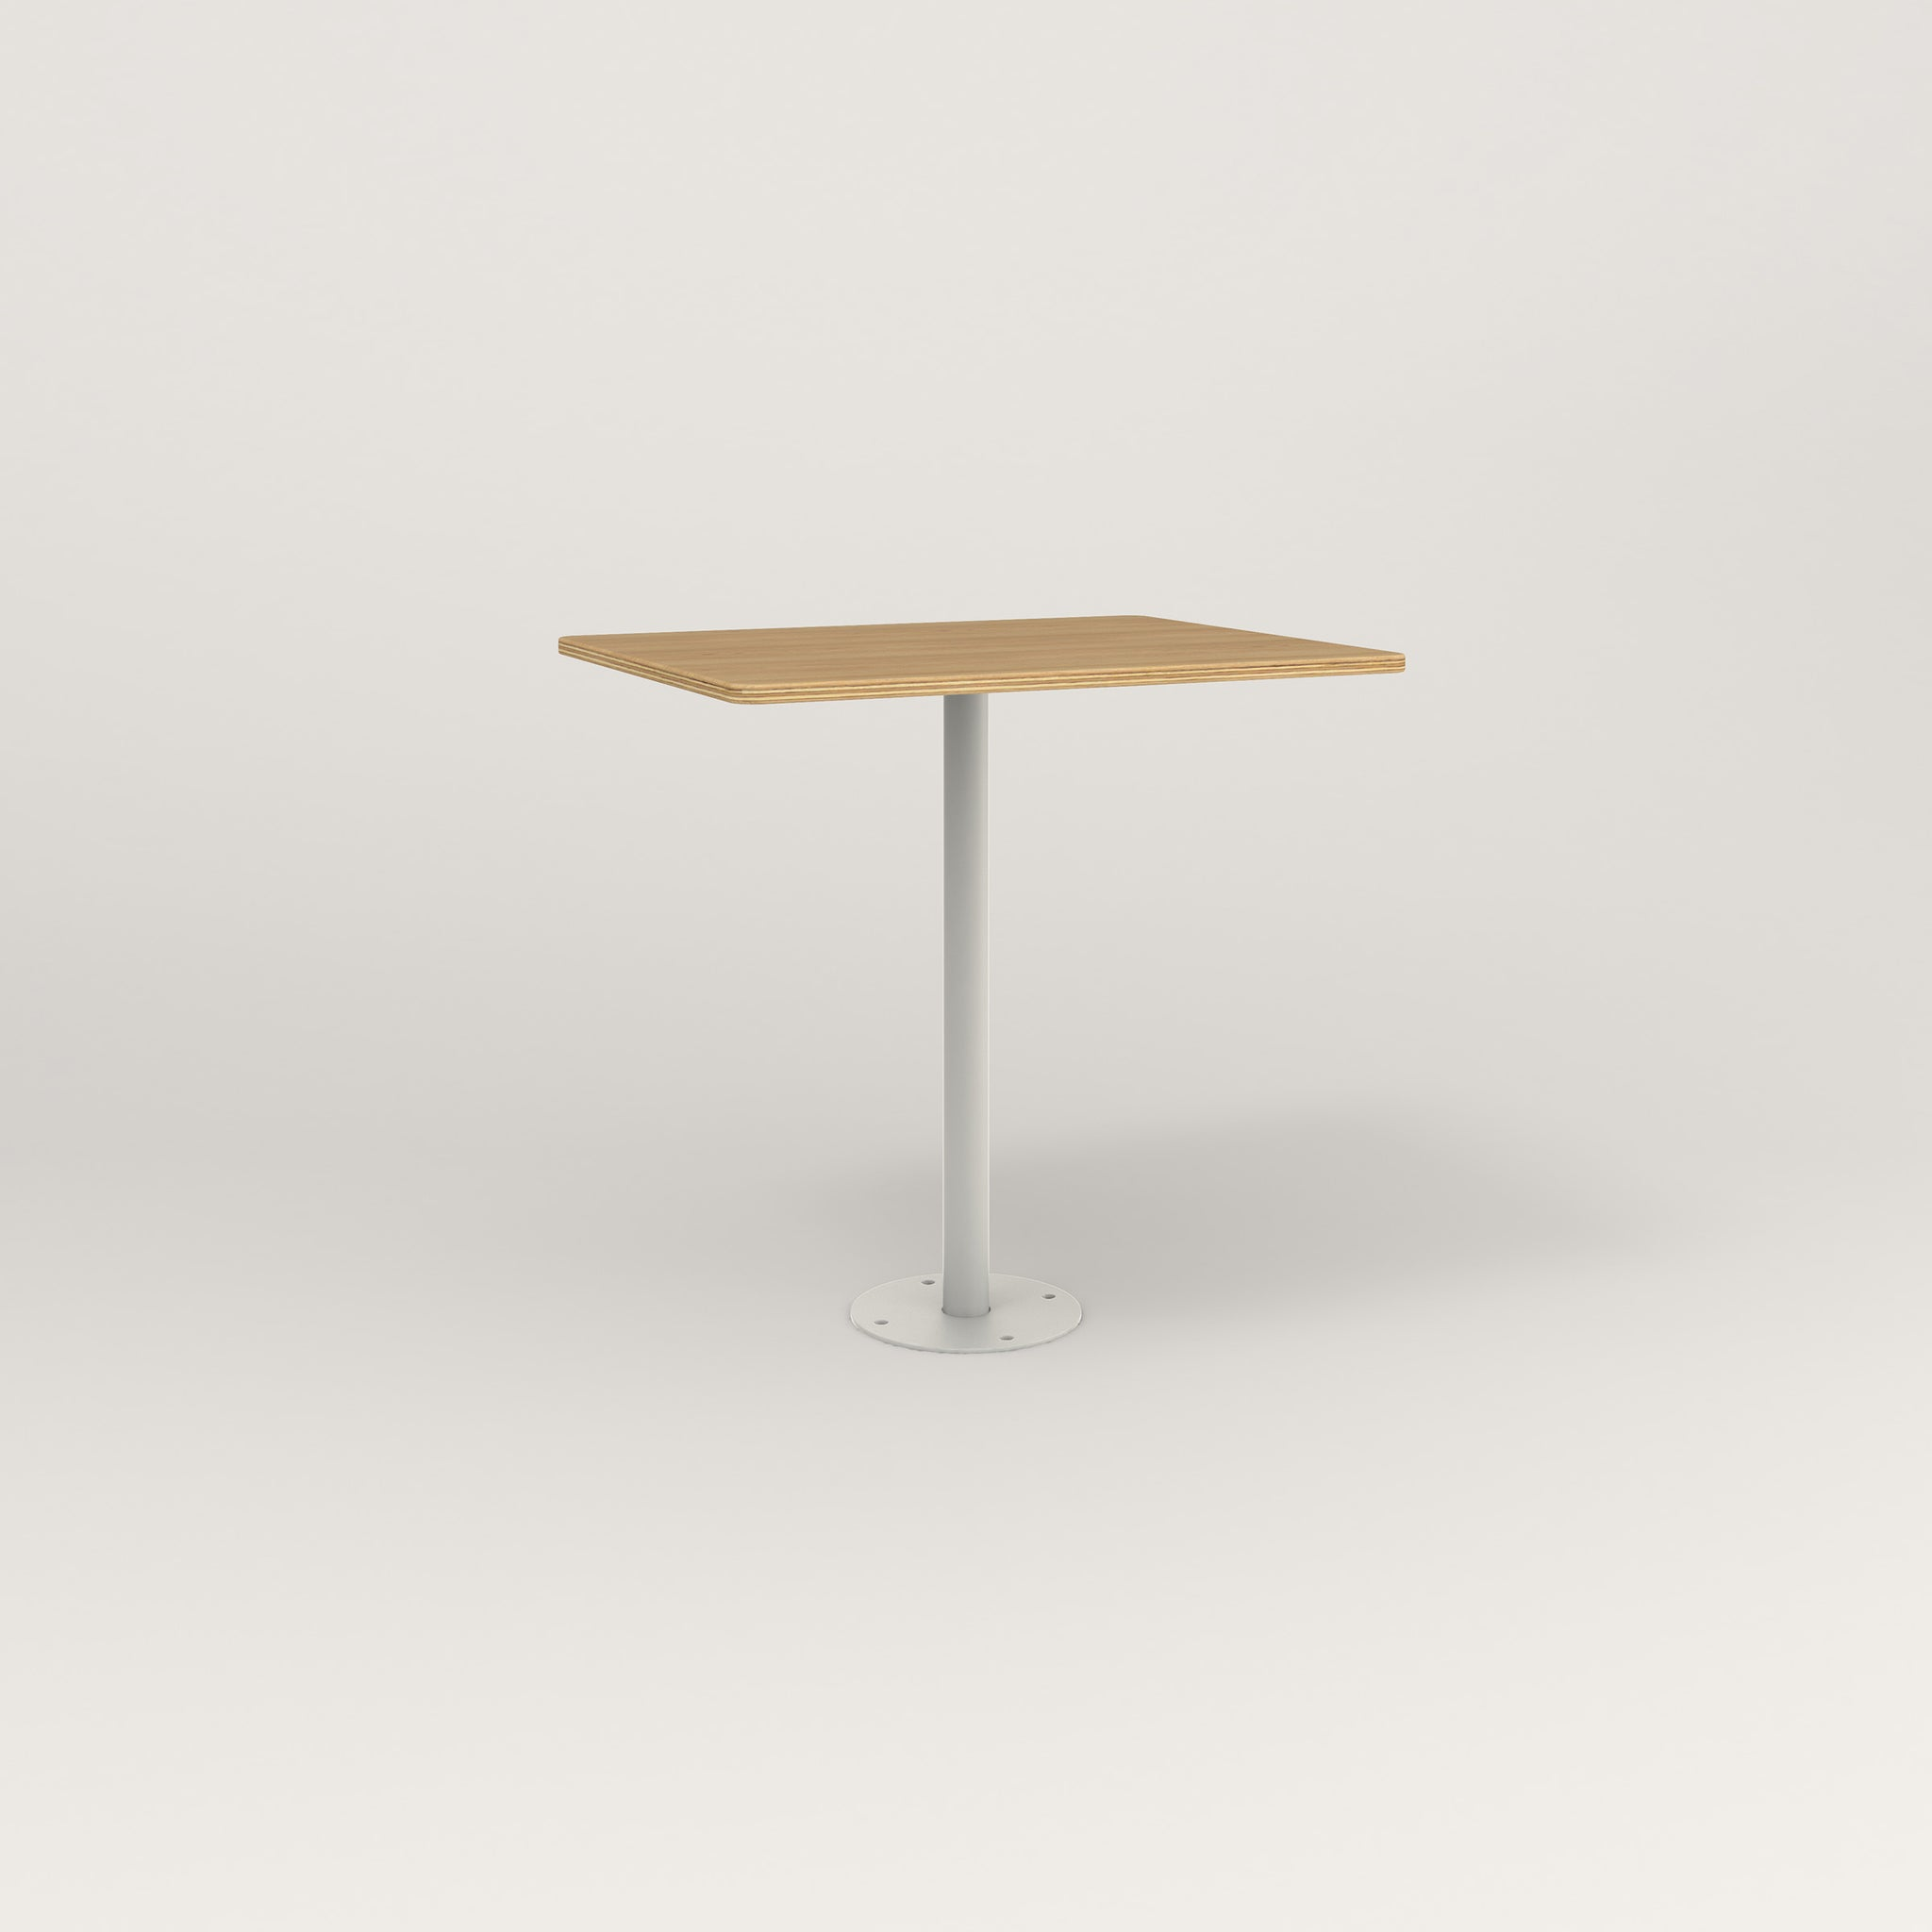 RAD Cafe Table, Rectangular Bolt Down Base in white oak europly and white powder coat.